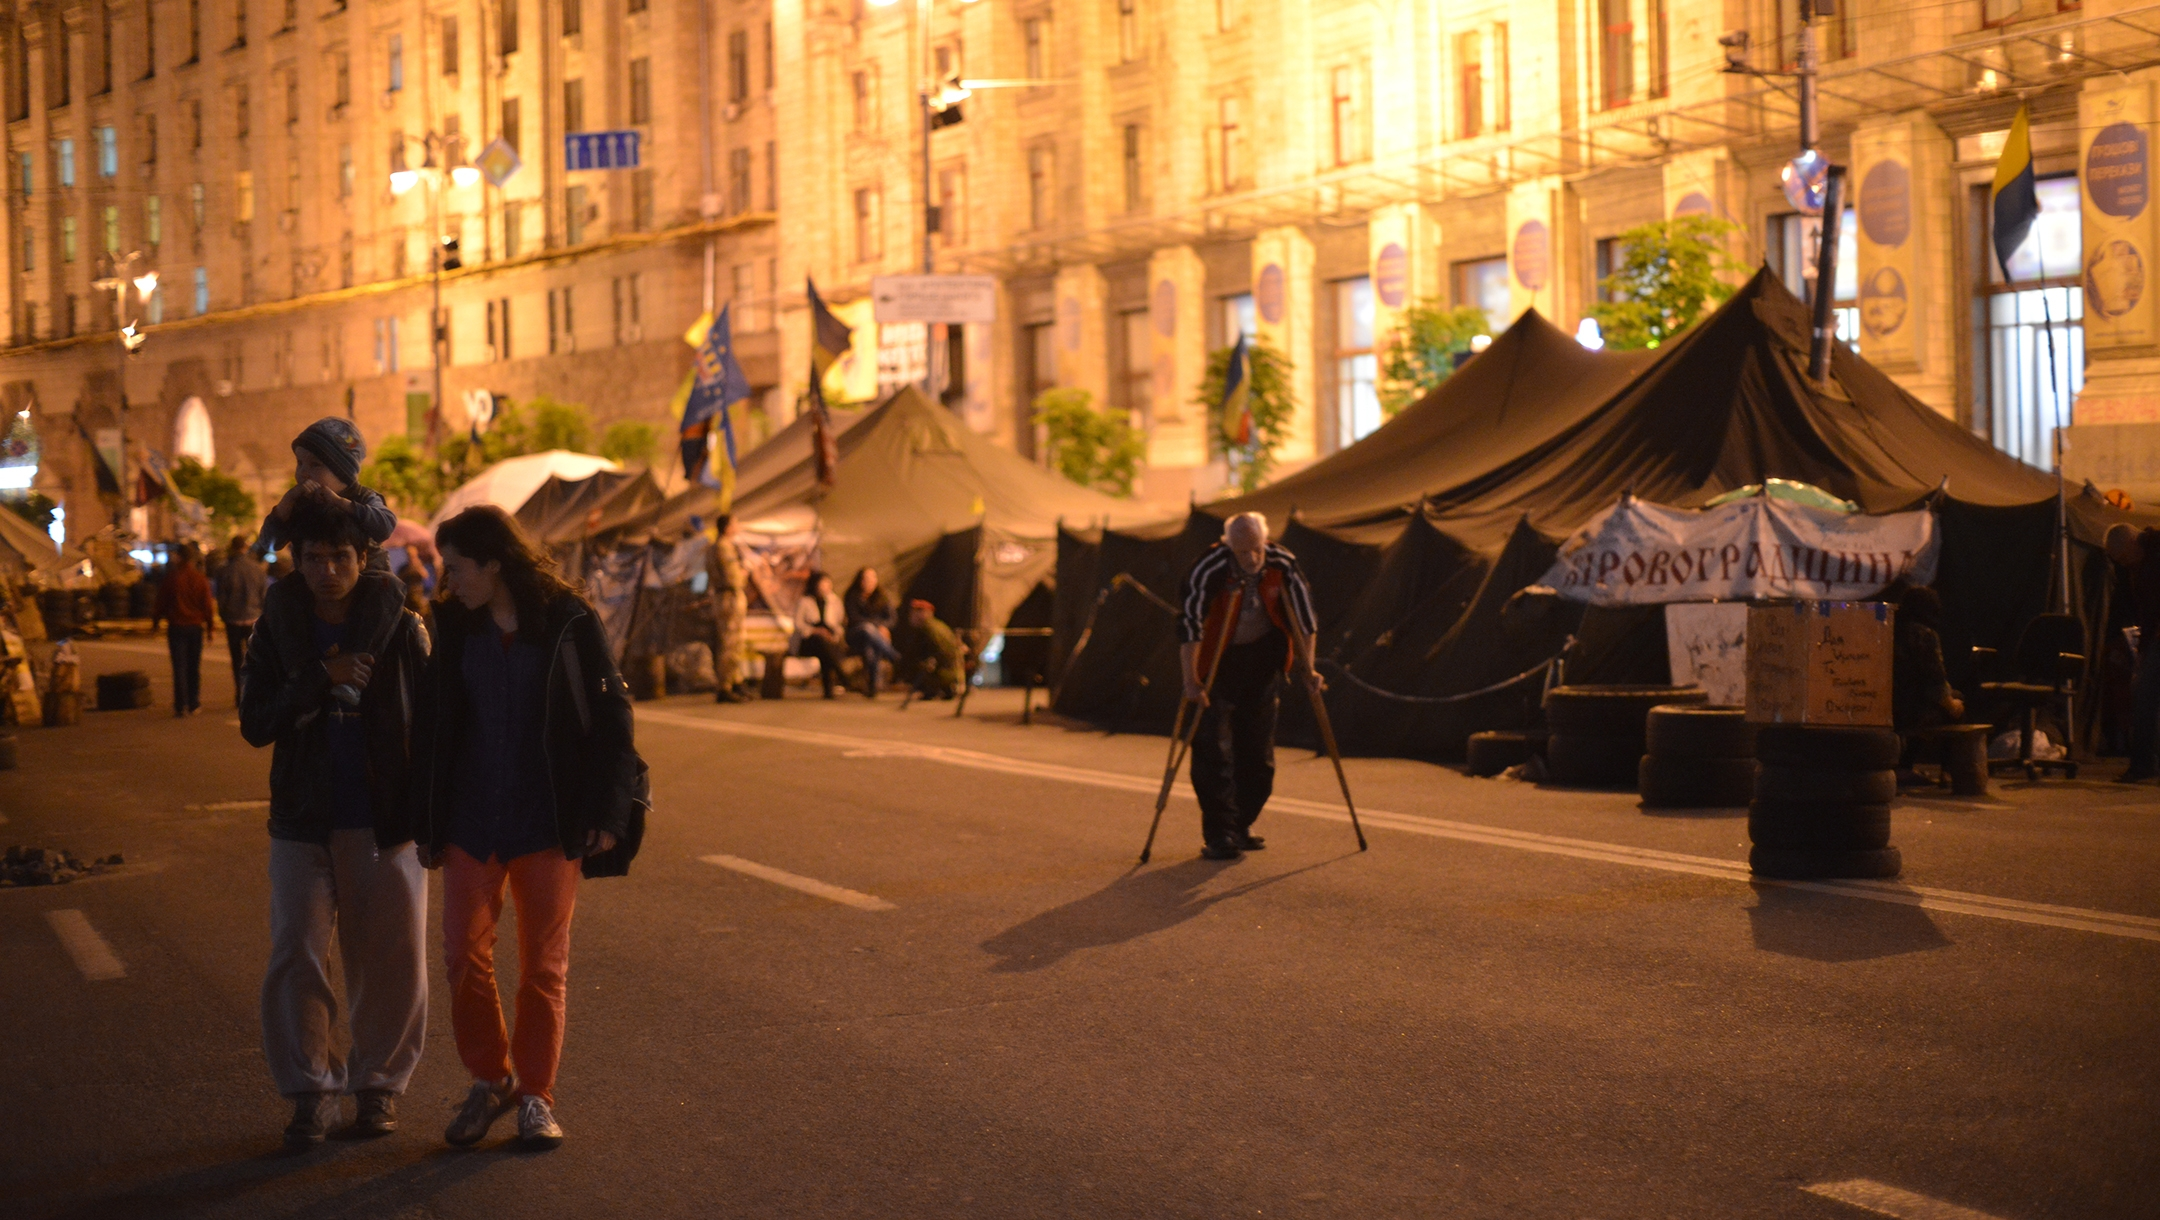 Residents of Kyiv, Ukraine at Maidan square on May 14, 2014. (Cnaan Liphshiz)